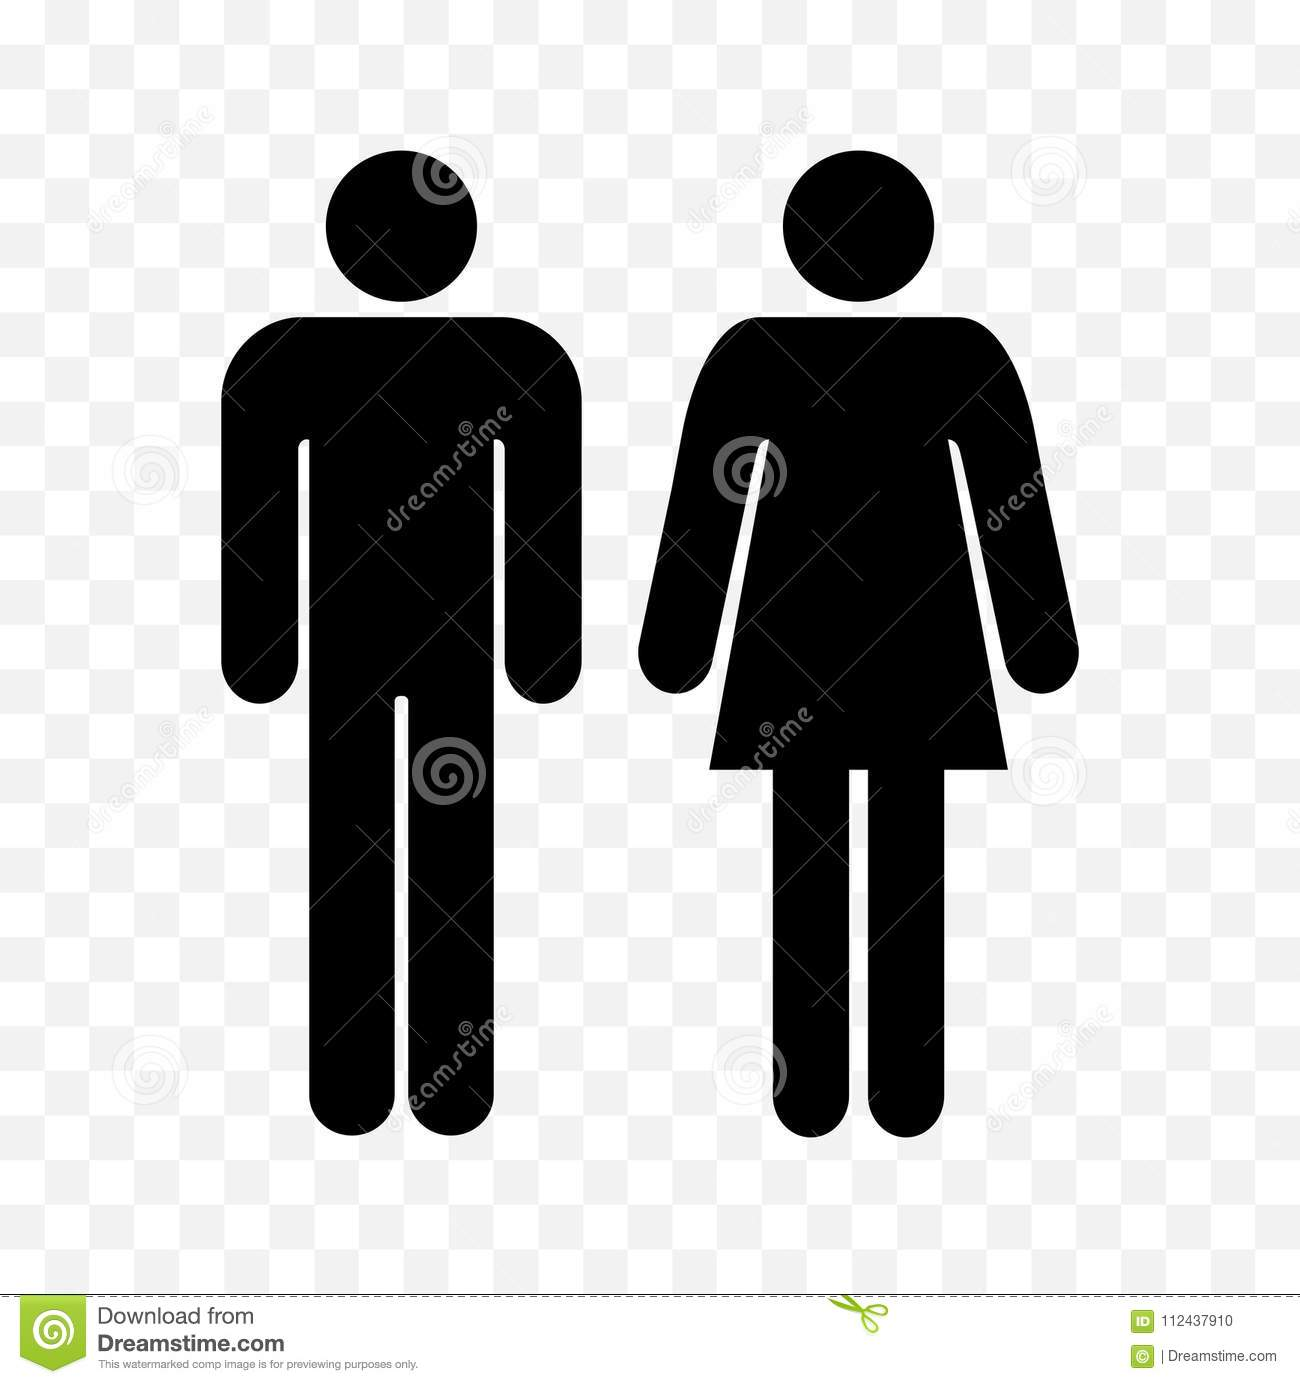 Wc symbols restroom men and women signs toilet symbols ladies and gentlemen icons man and woman black silhouettes